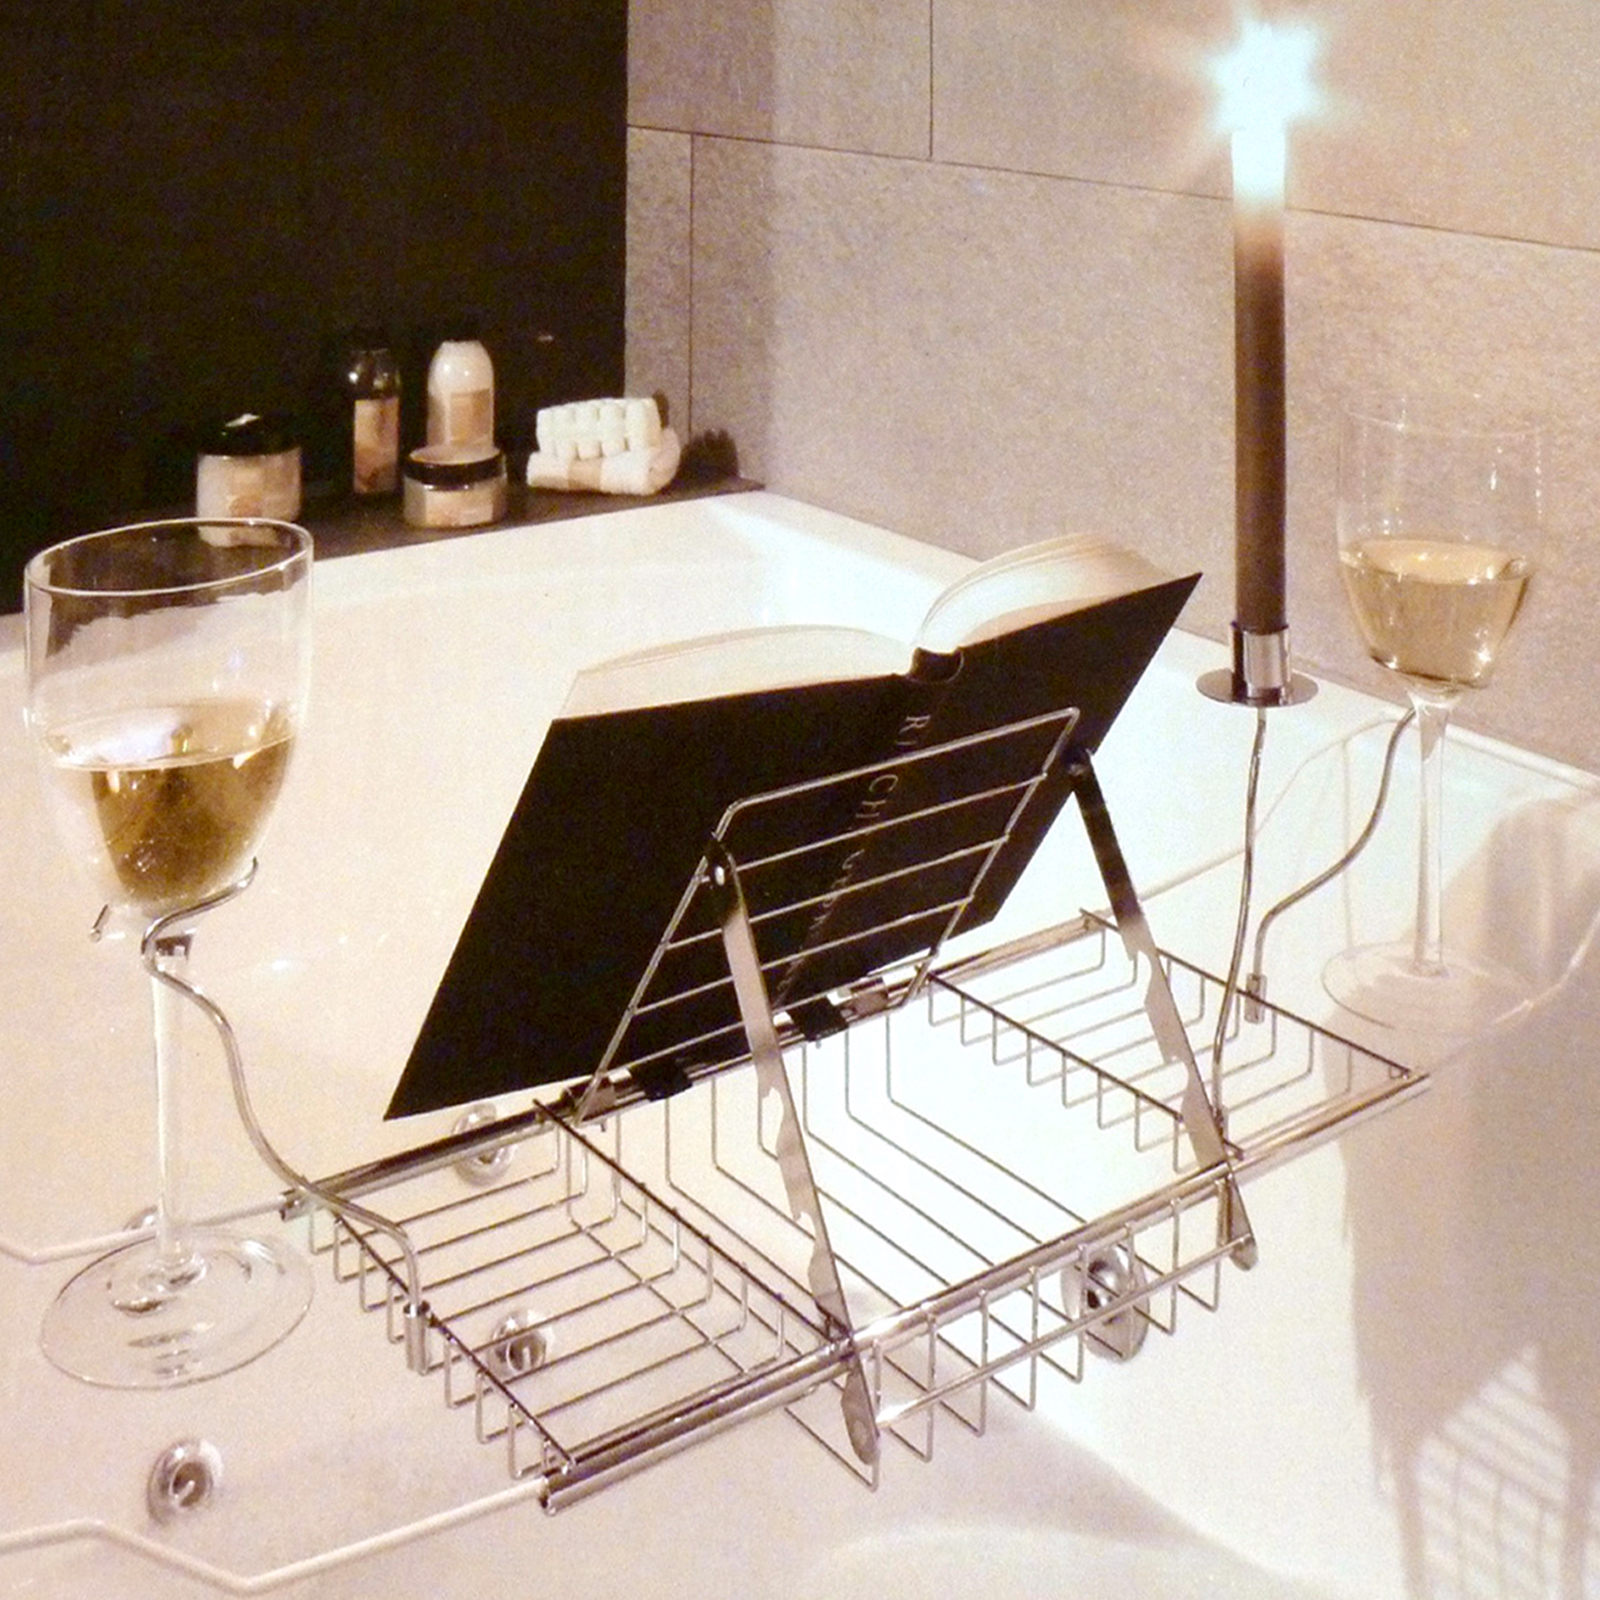 adjustable bath rack book stand bathtub shelf tray glass holder ebay